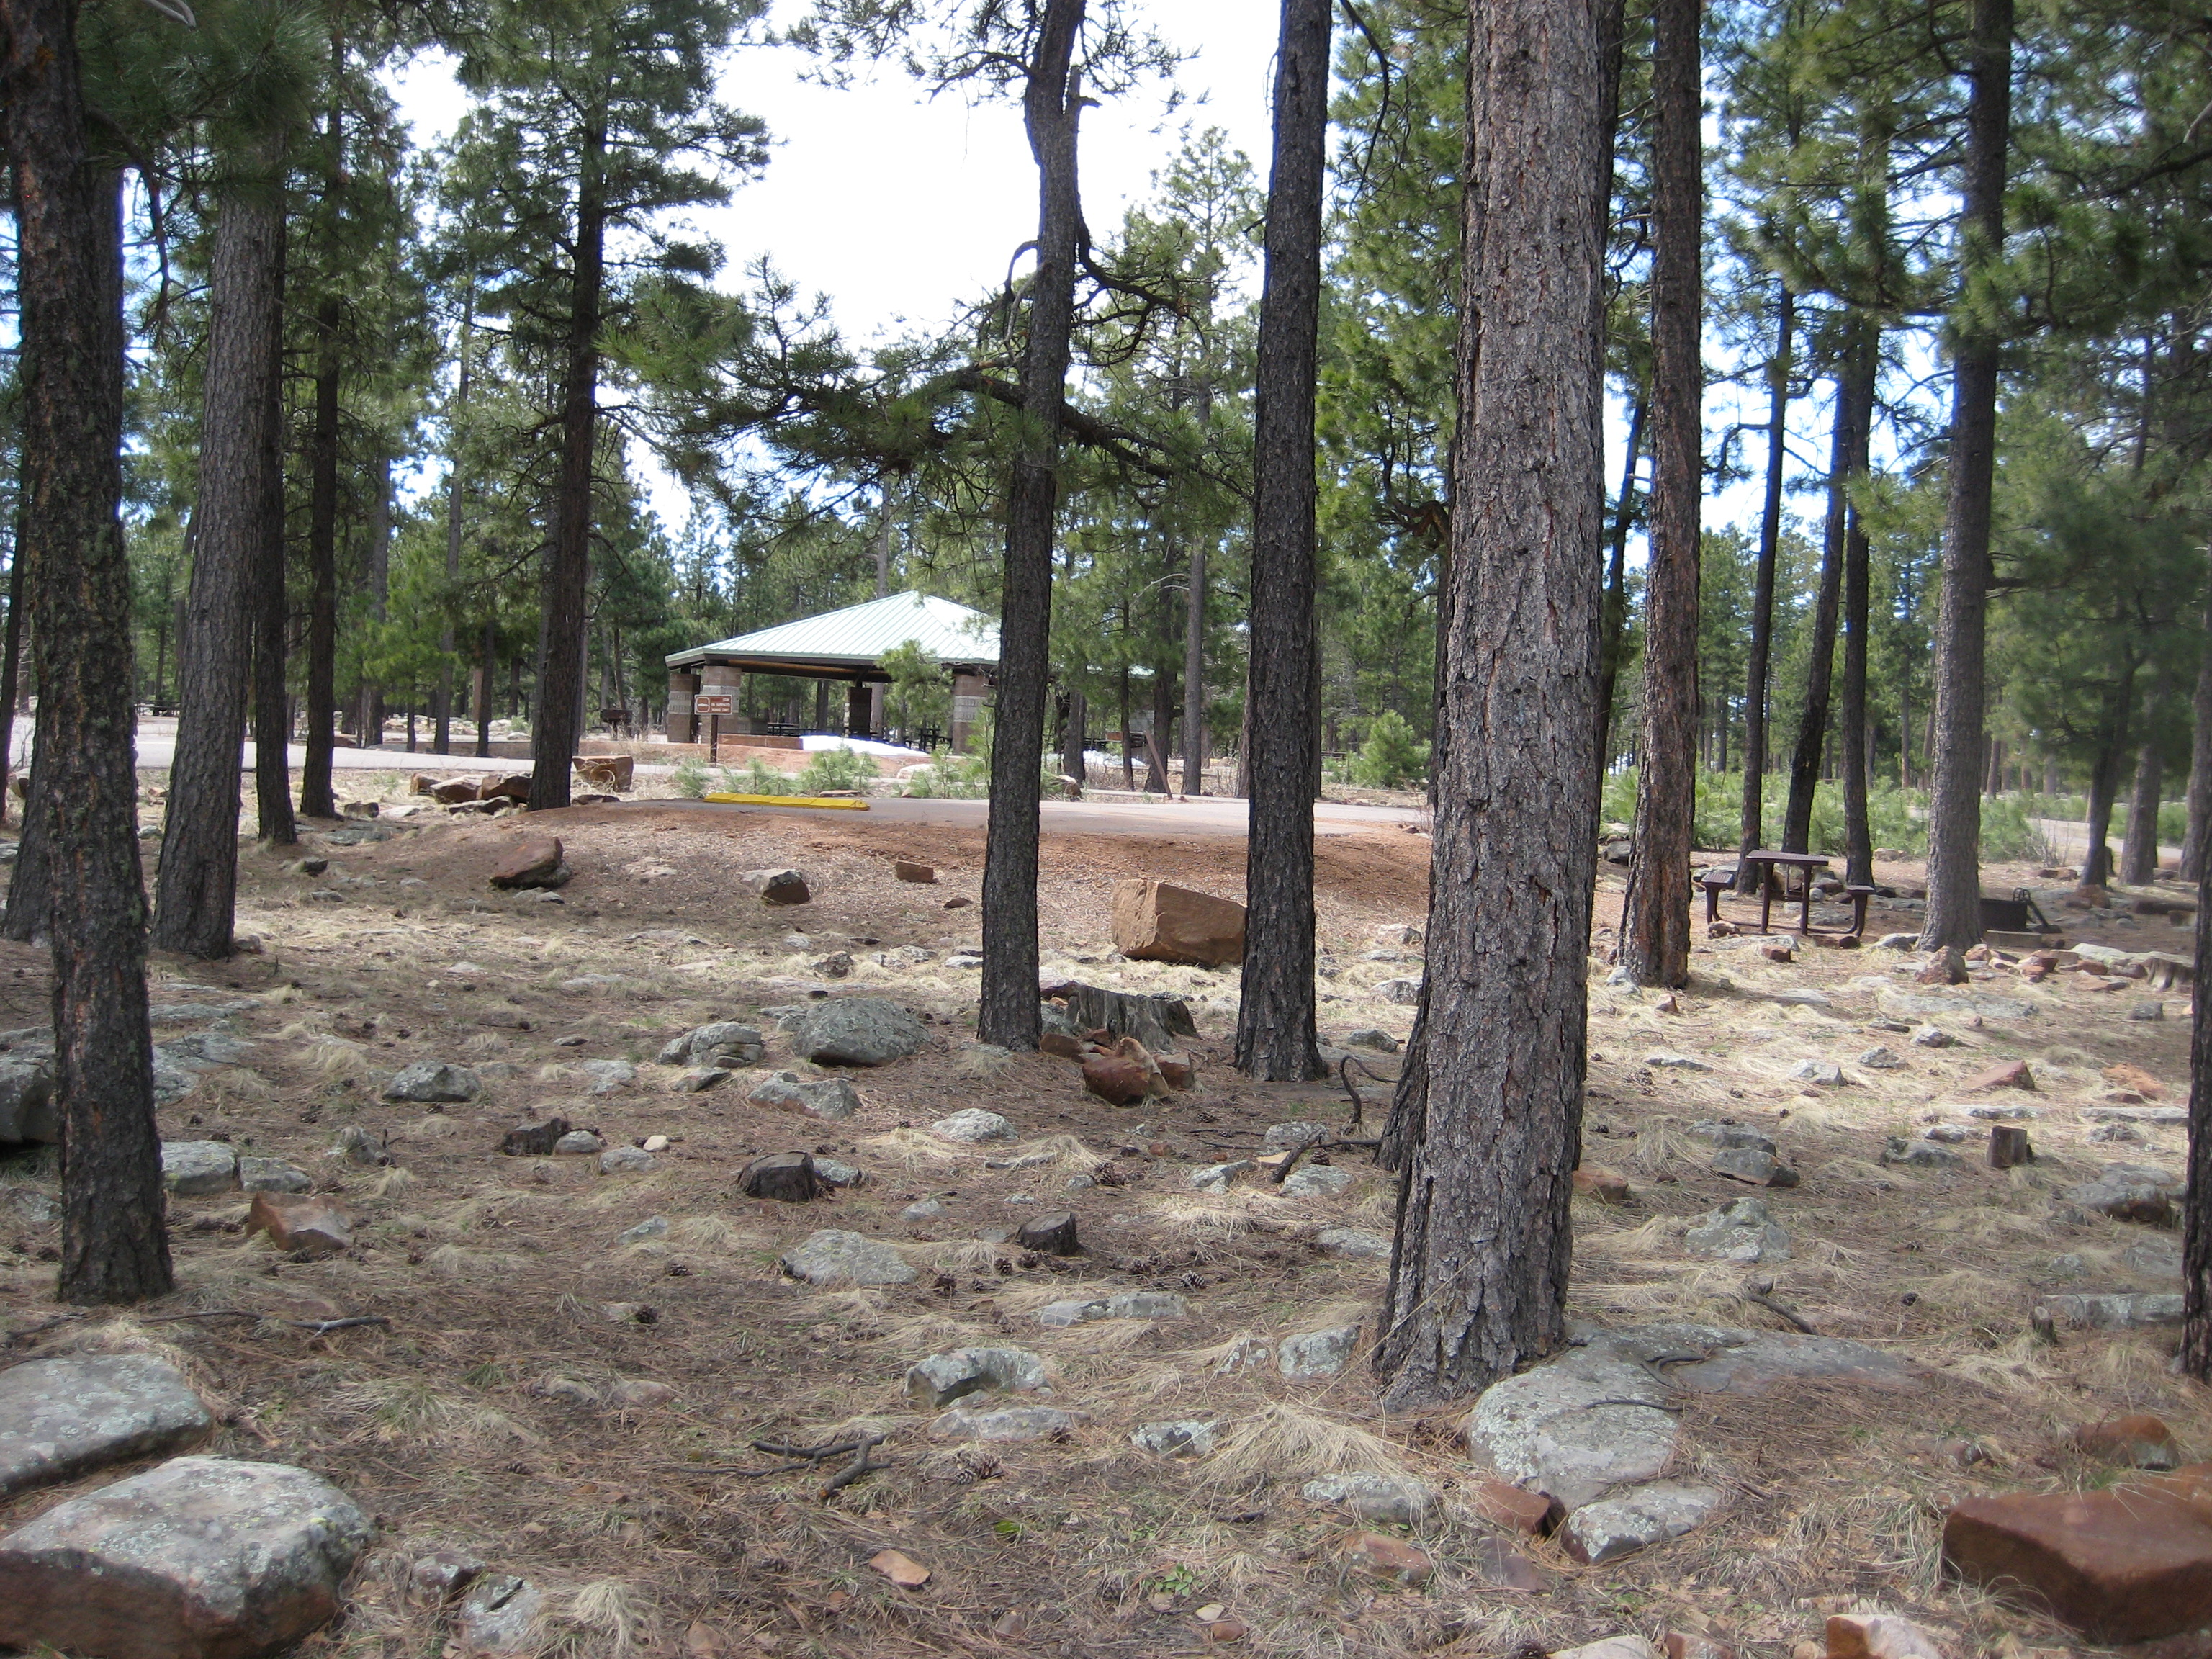 Ramada at Crook Campground